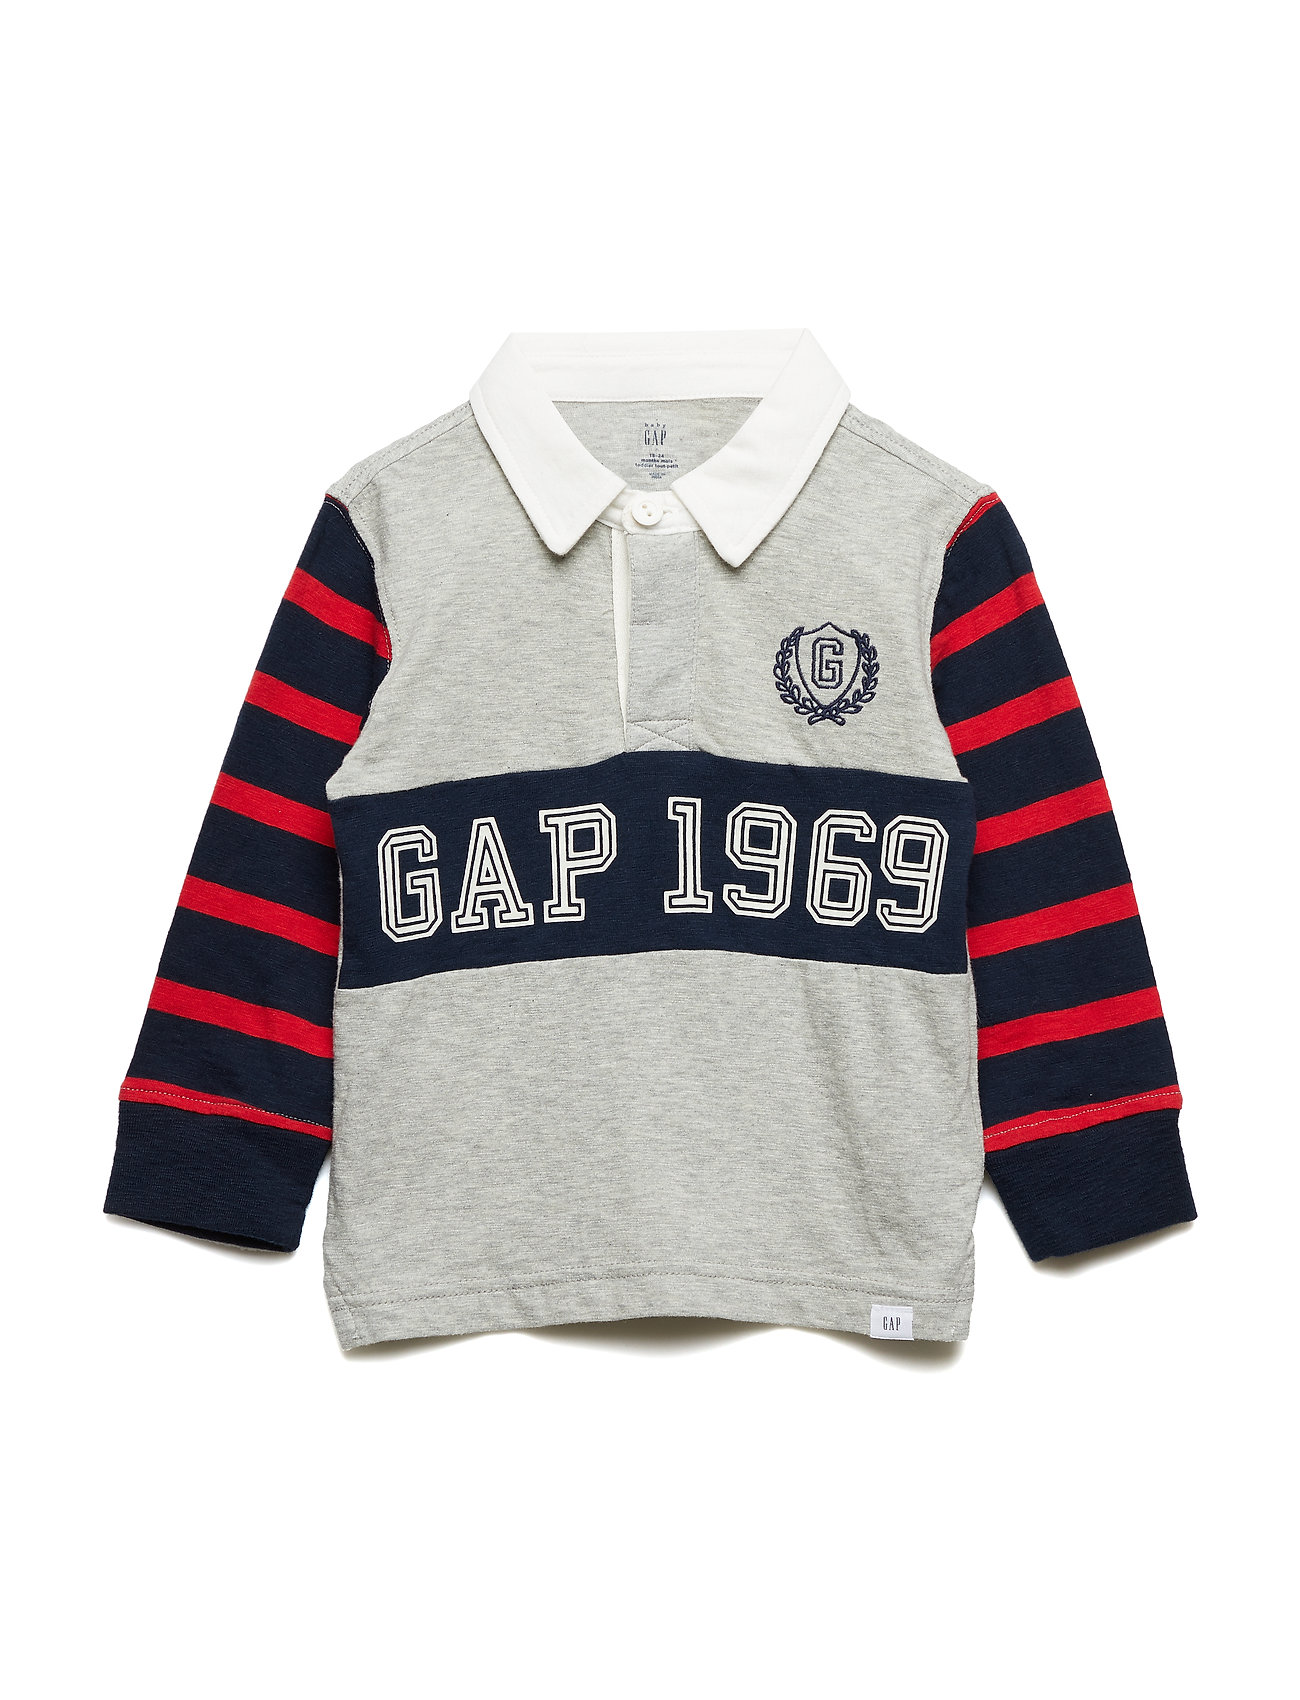 GAP Toddler Embroidered Patch Polo Shirt - LIGHT HEATHER GREY B08